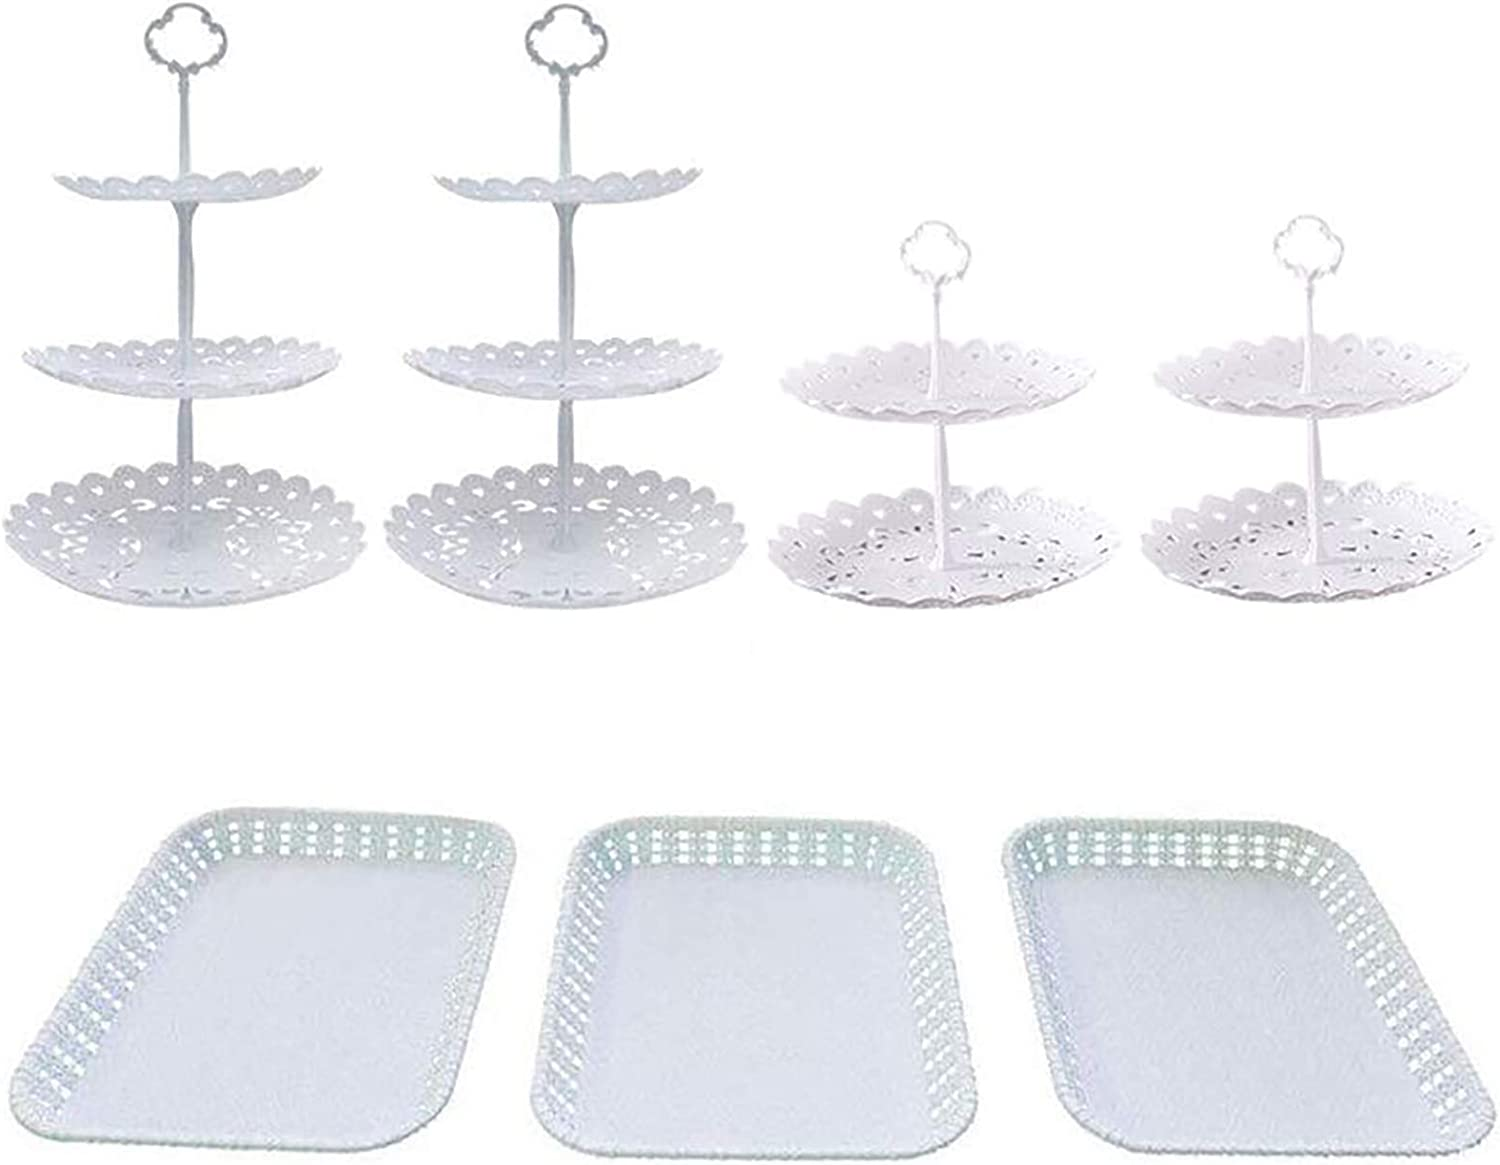 Christmas Wedding Party Cake Cupcake Stand with 7Pcs 3-Tier Round +2-Tier Round Food Server Display Stand and 3 Rectangle Plastic Serving Trays